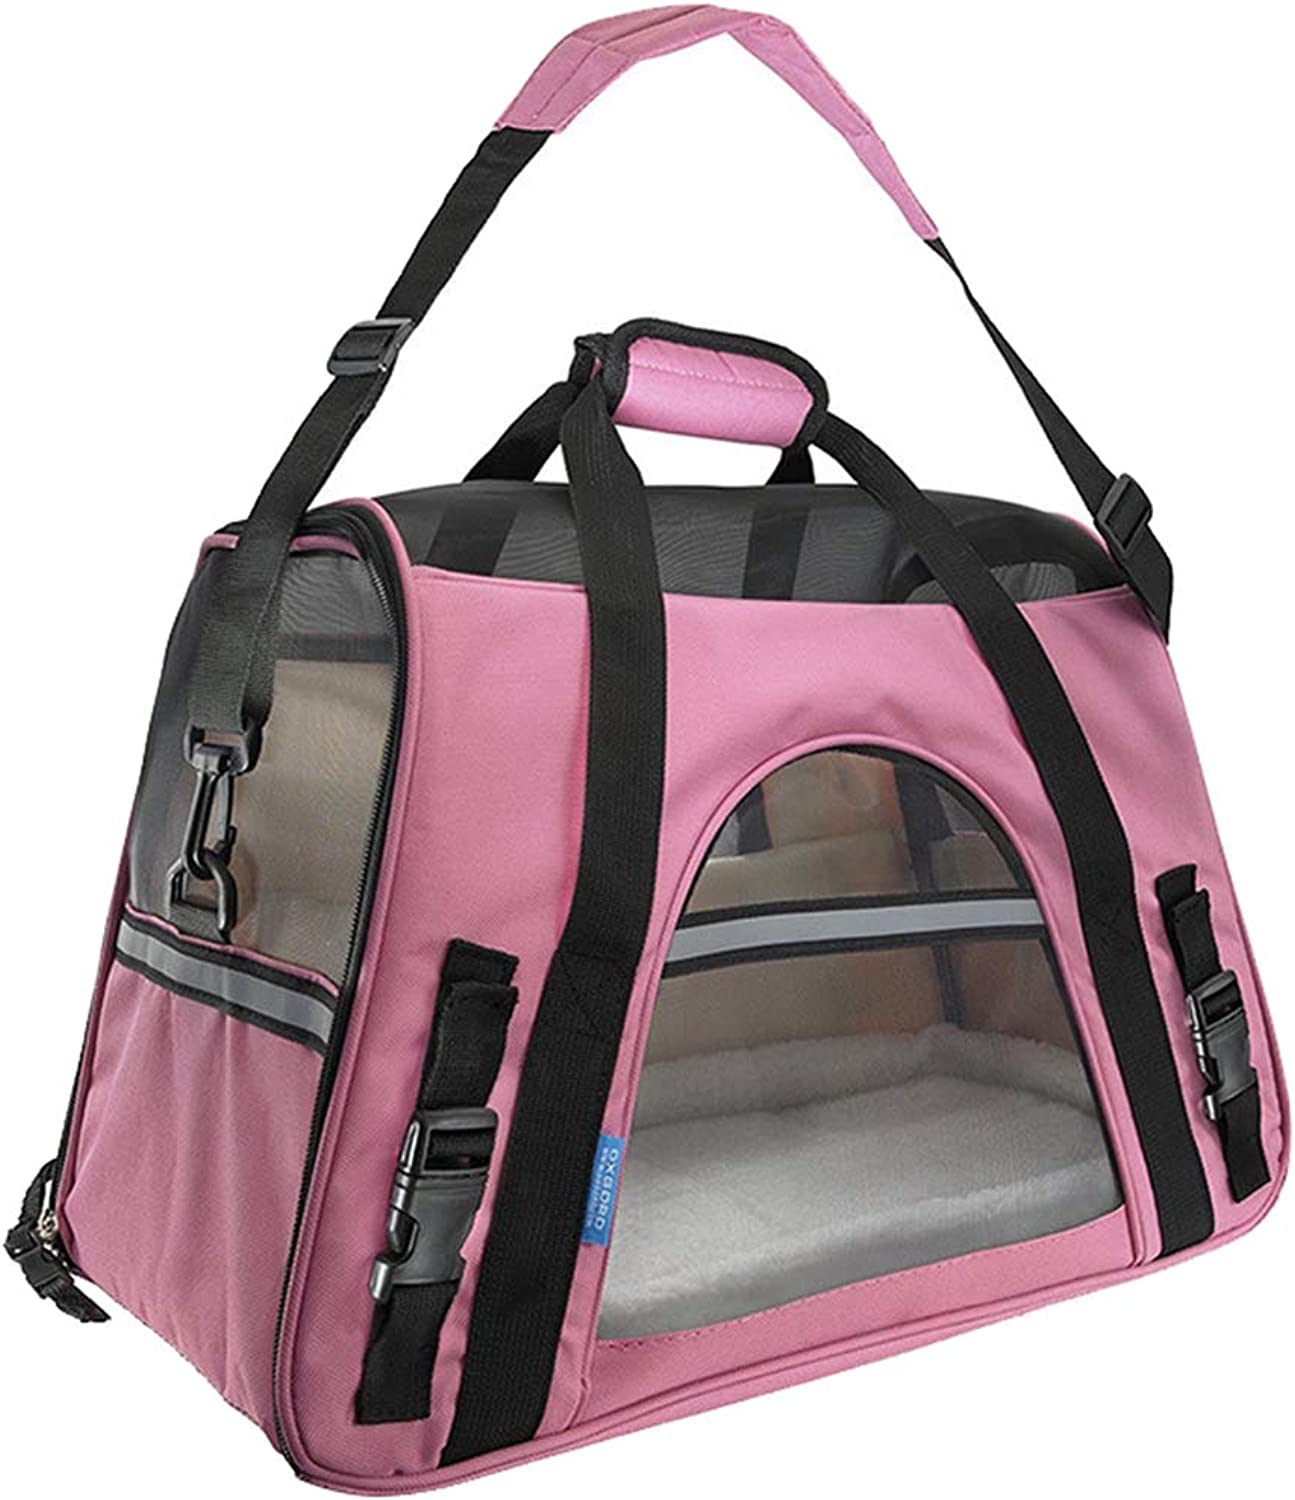 Pet Travel Carrier Bag for Dogs or Cats, Expandable Soft Sided Pet Tote Carriers Bags, Fleece Sleep Pads, Soft Side Mesh Breathability